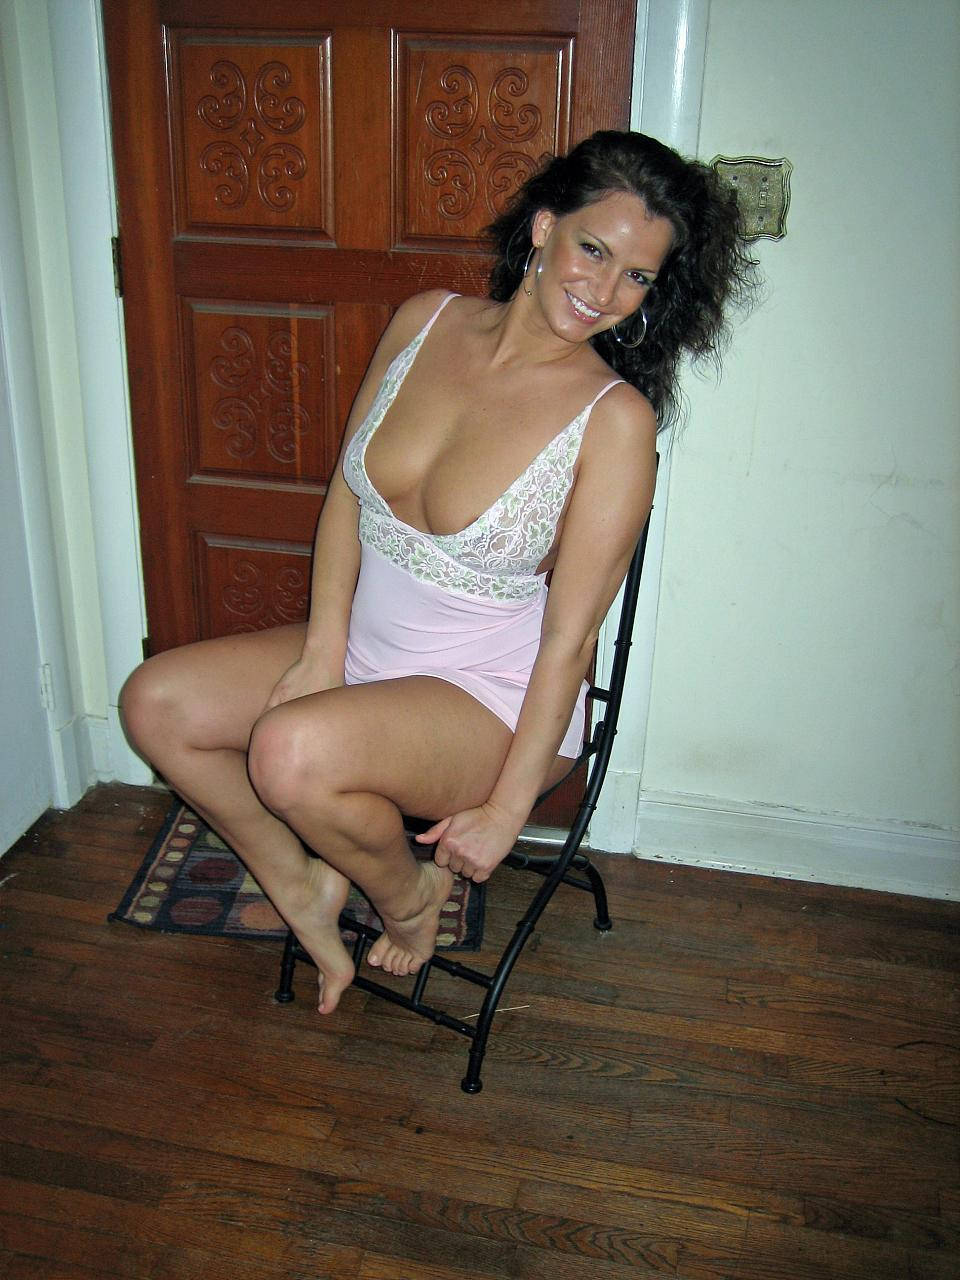 Milf Pictures Gallery